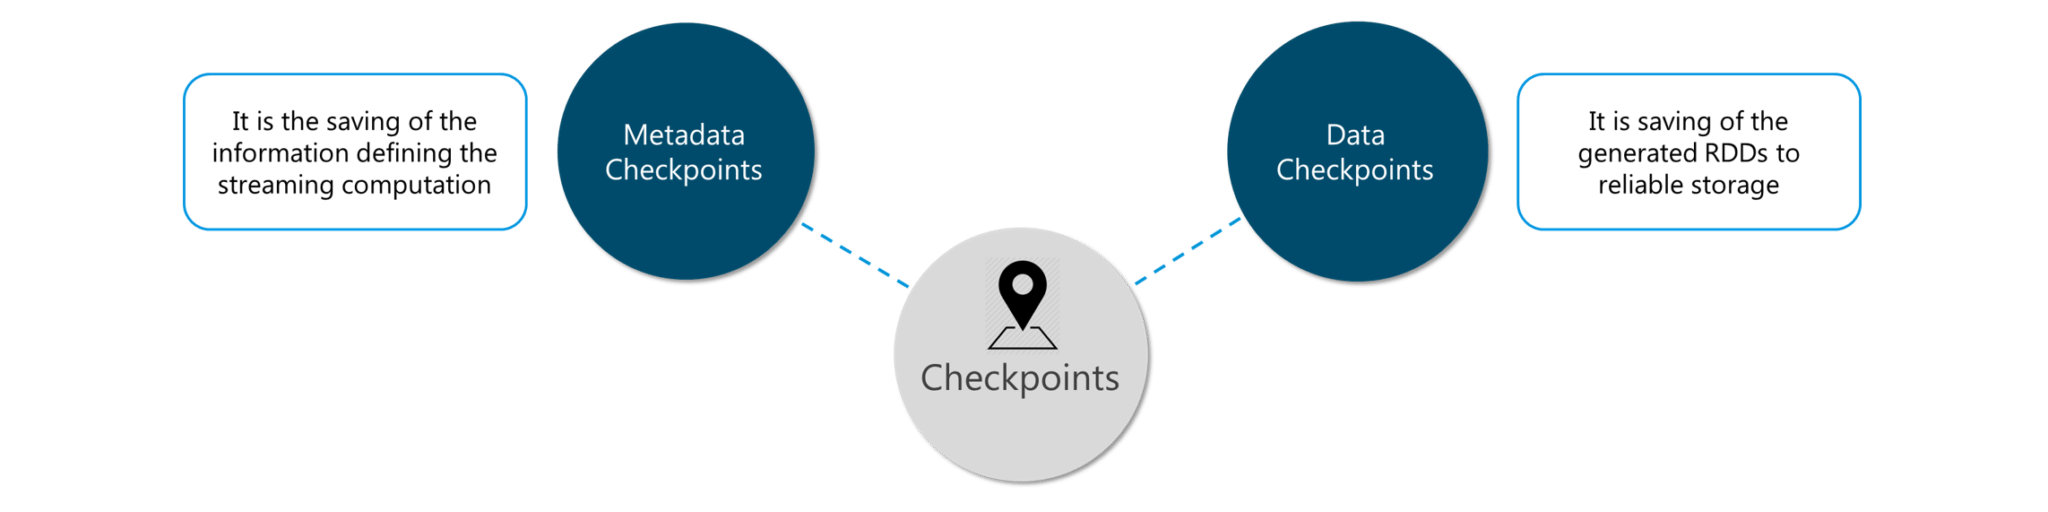 Checkpoints - Spark Interview Questions - Edureka